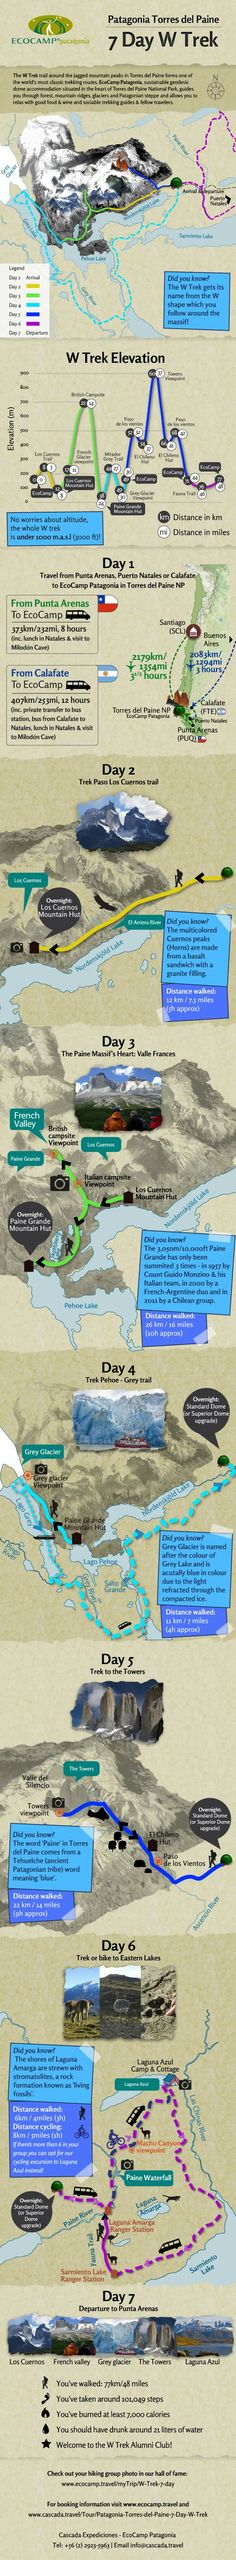 Patagonia Torres del Paine 7 Day W Trek Infographic.  Book  your W Trek: http://www.cascada.travel/Tour/Patagonia-Torres-del-Paine-7-Day-W-Trek